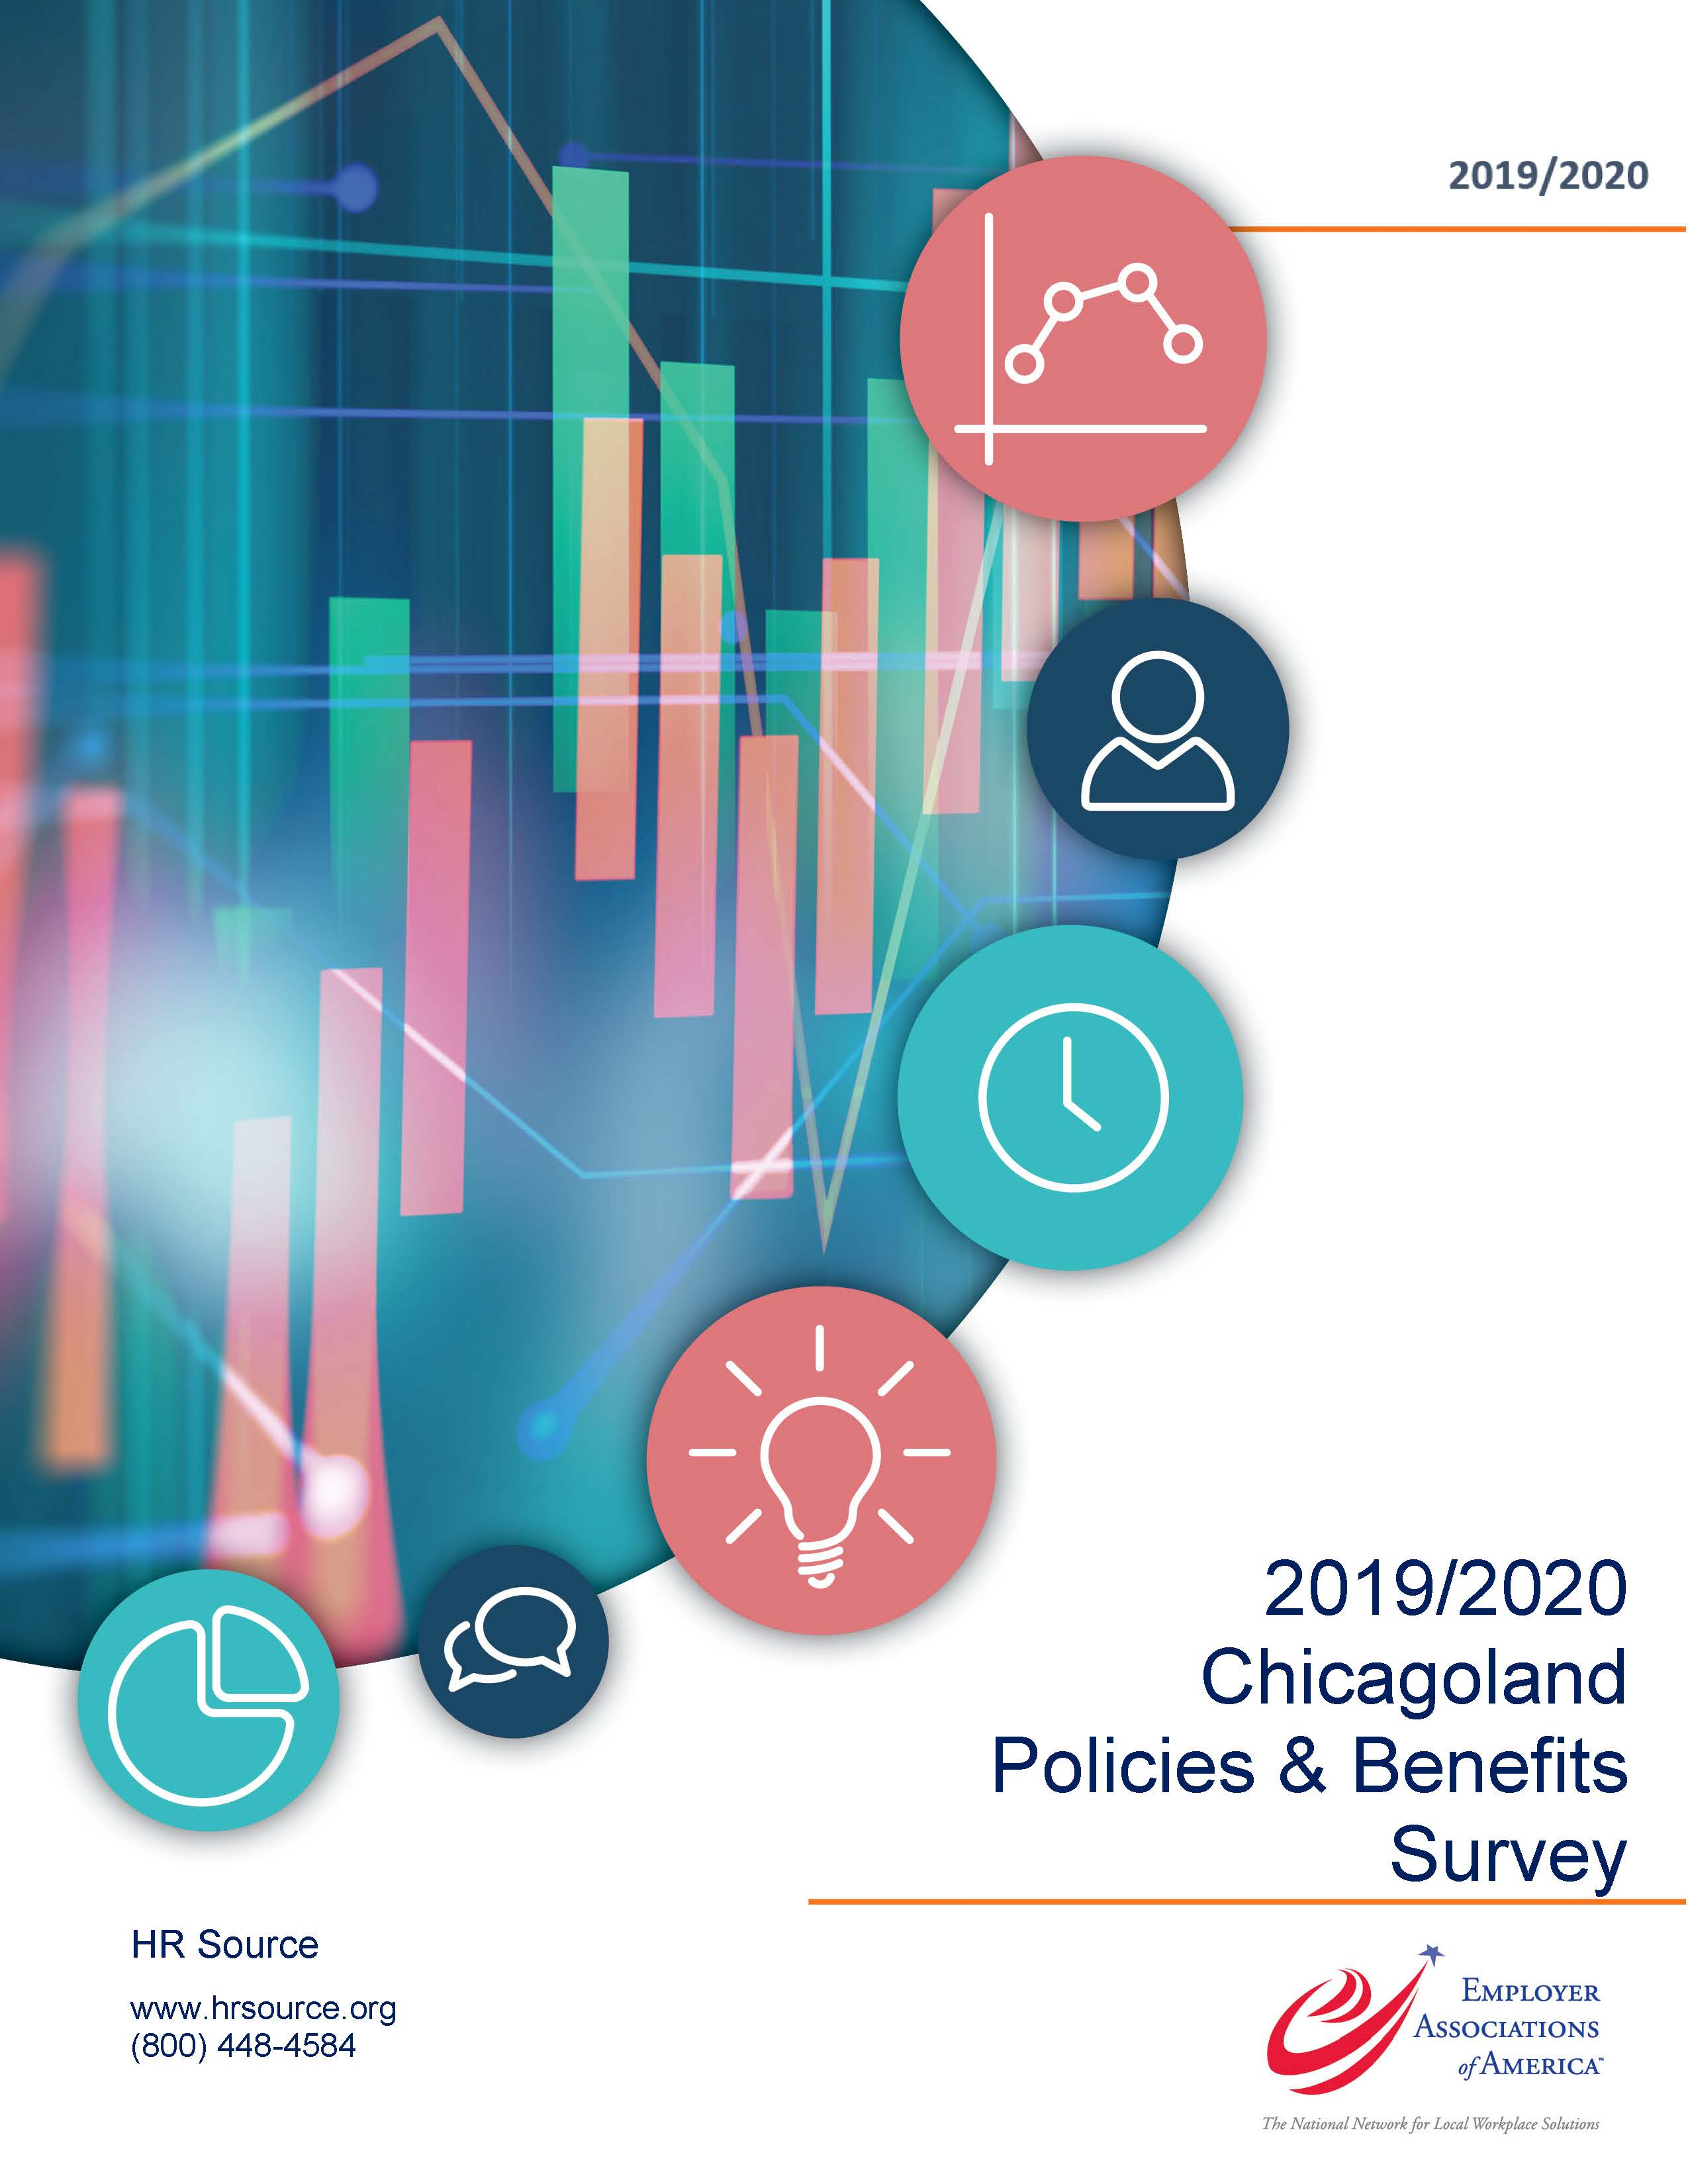 Chicagoland Policies and Benefits Survey 2019/2020